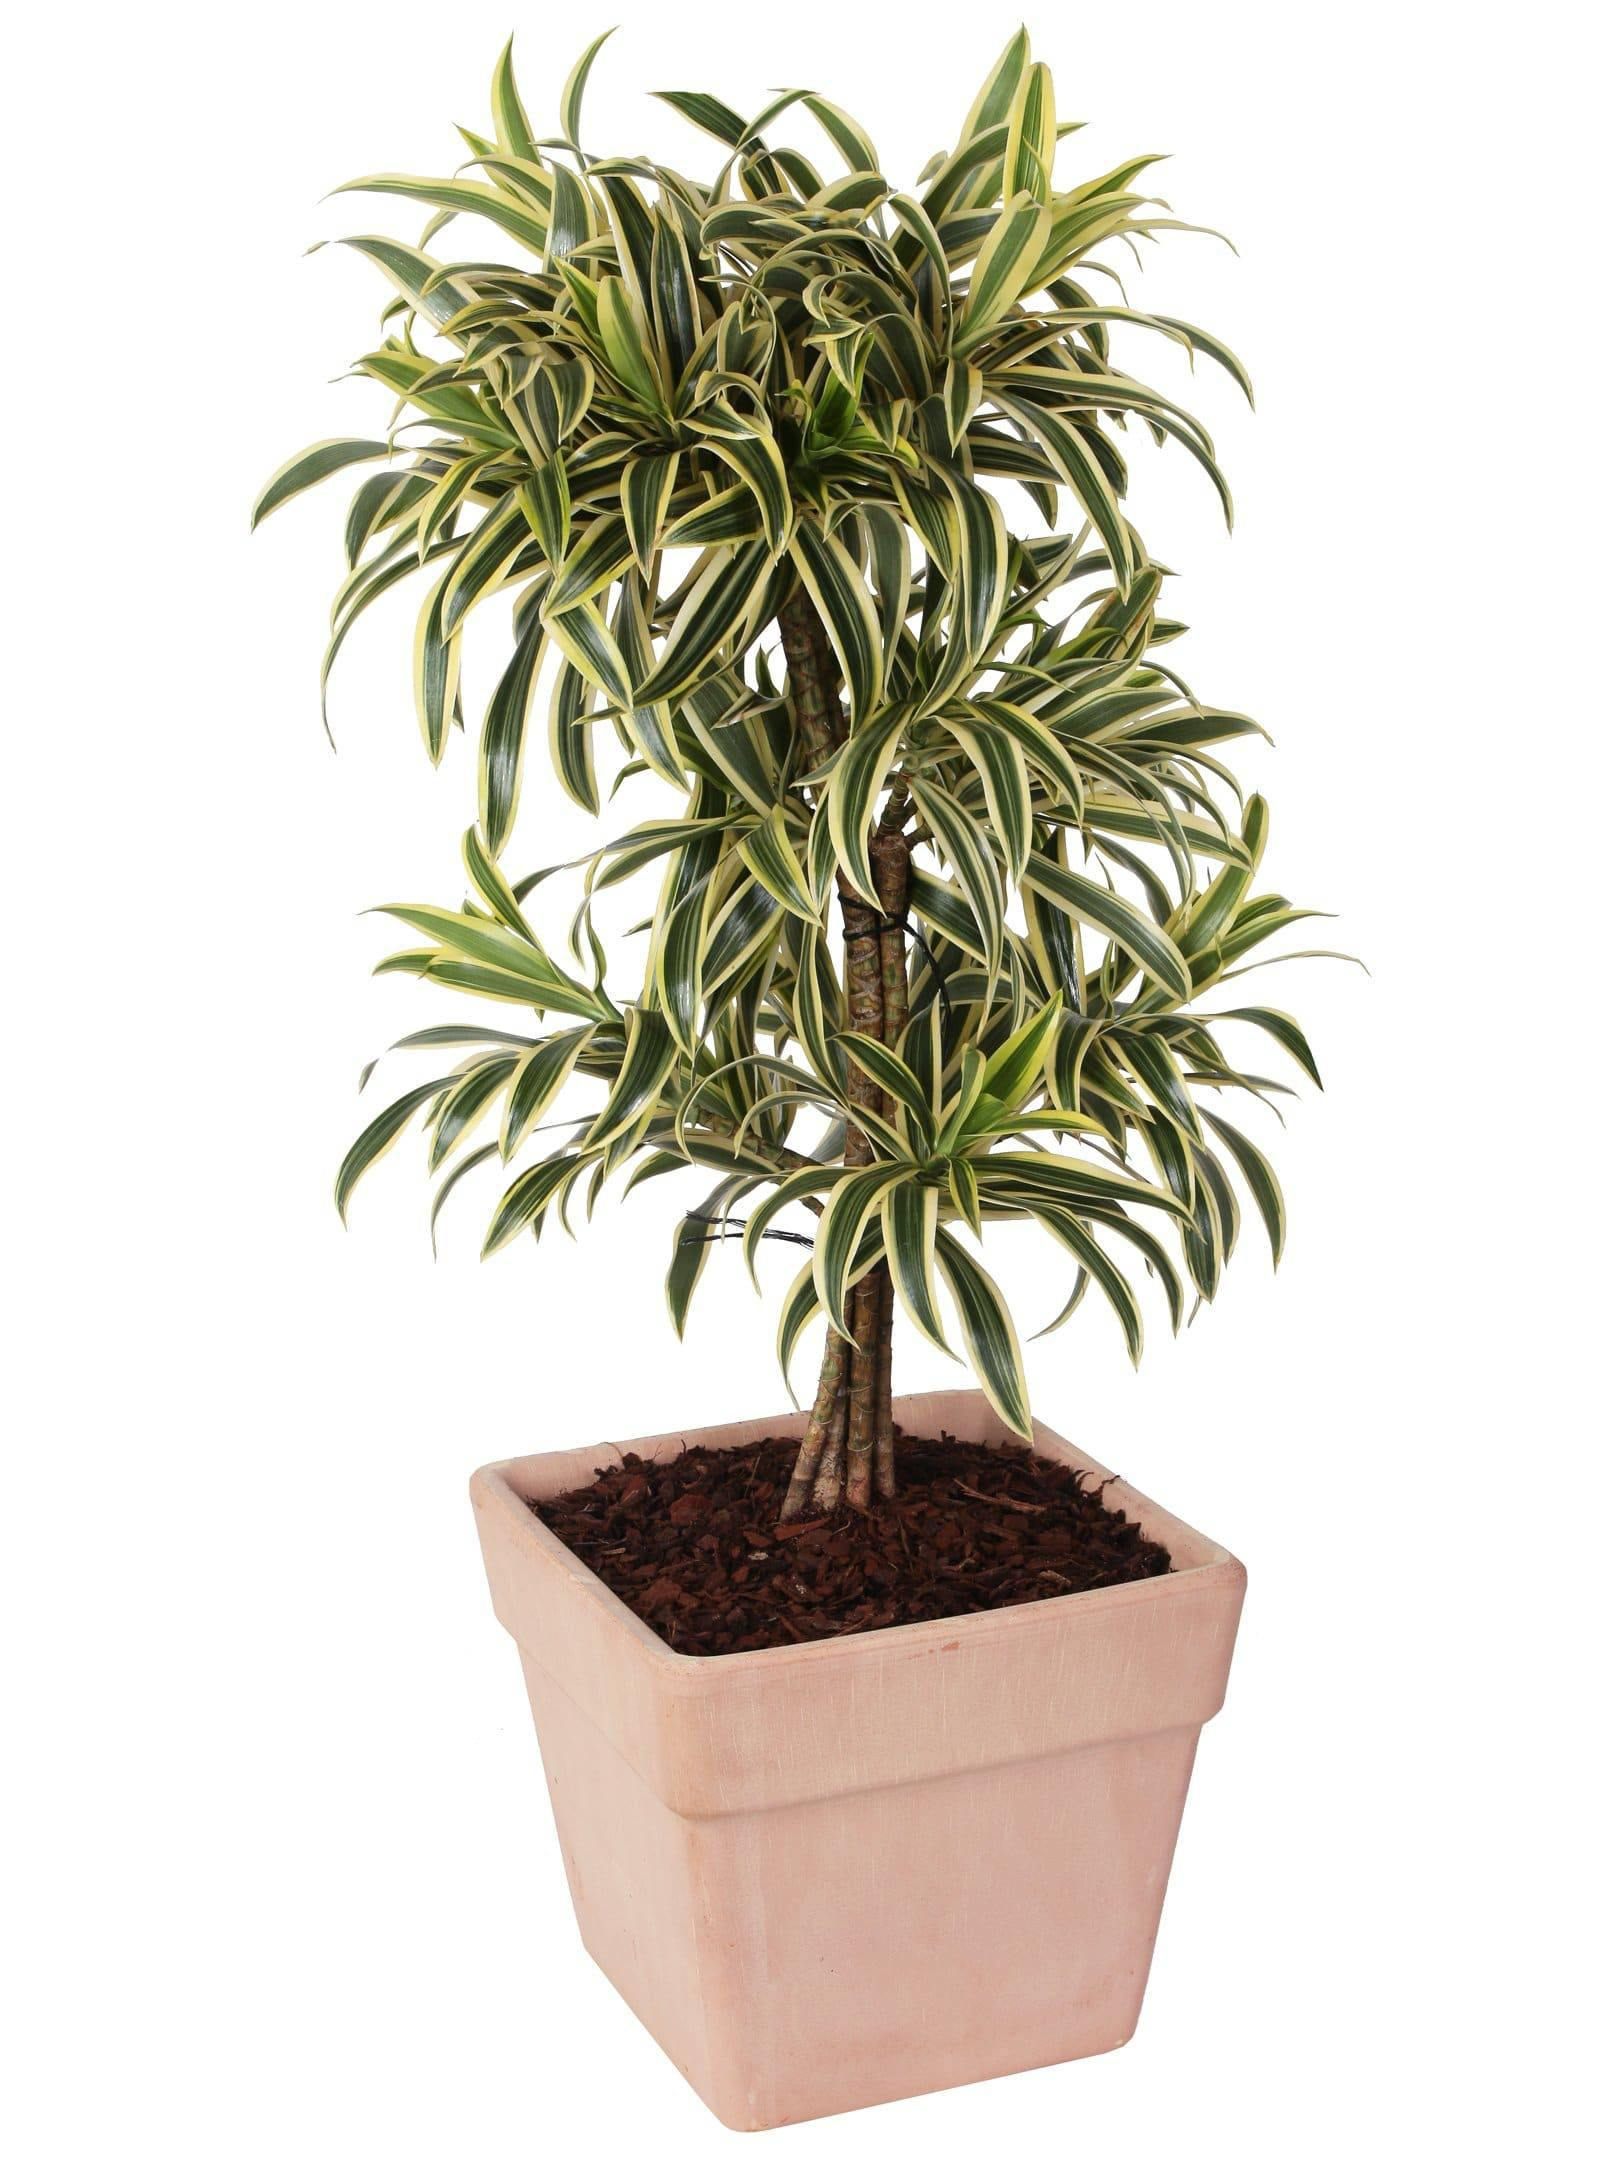 Dracaena Reflexa Pleomele Song of India in vaso terracotta altezza 95/100 cm. -Casita Hermosa